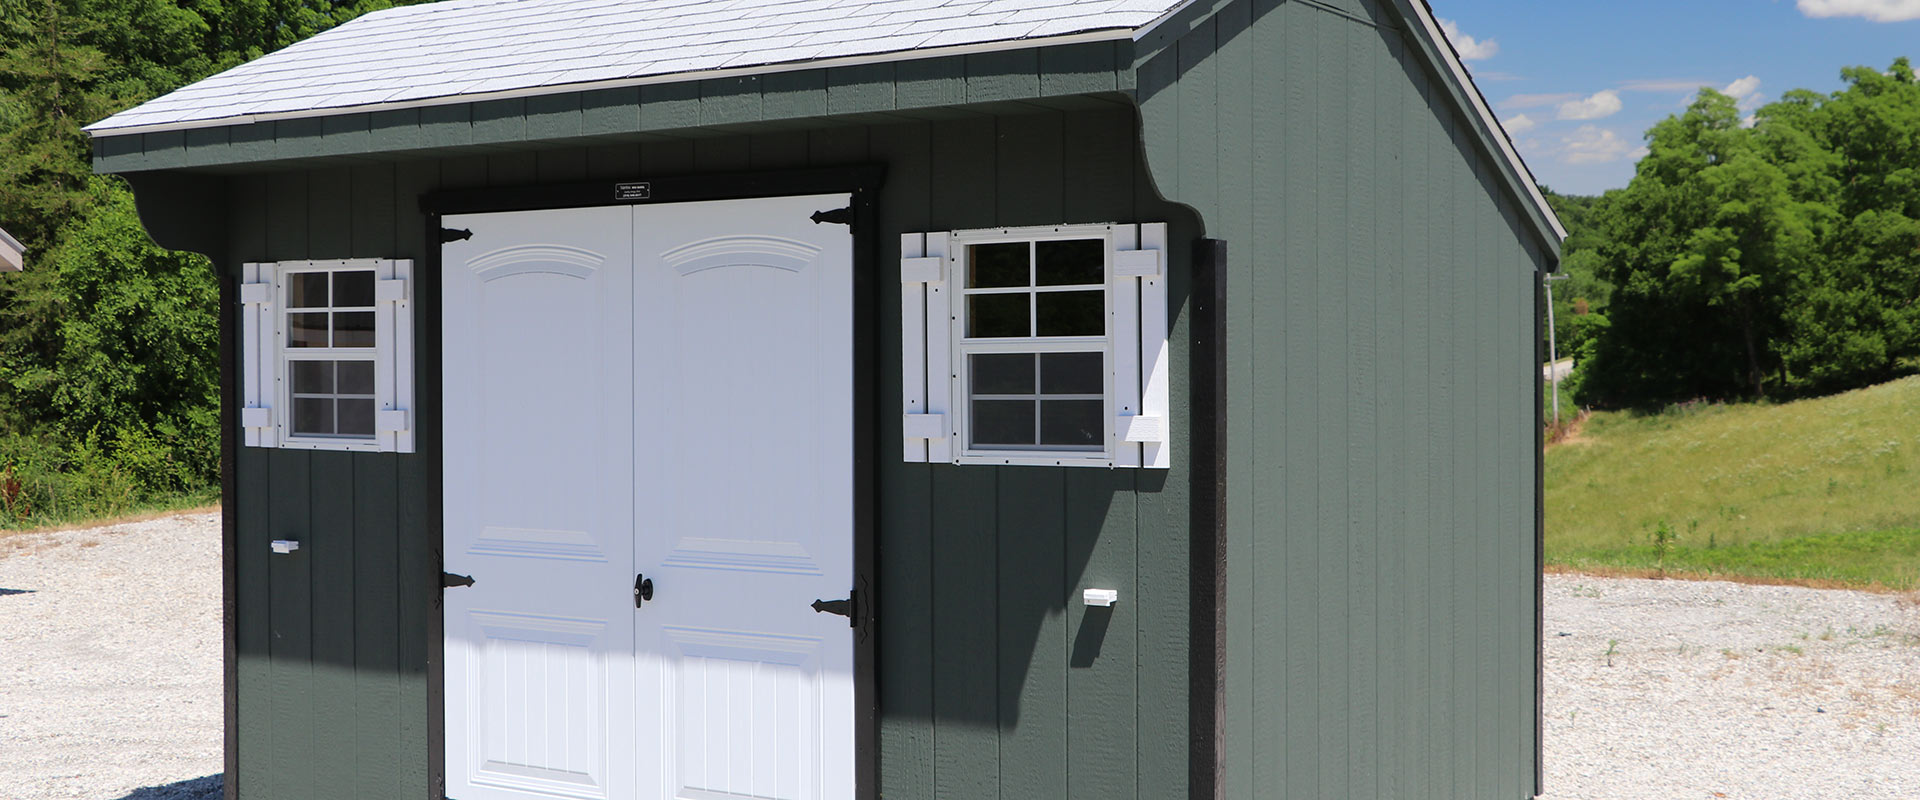 storage sheds backyard buildings martin u0027s mini barns iowa